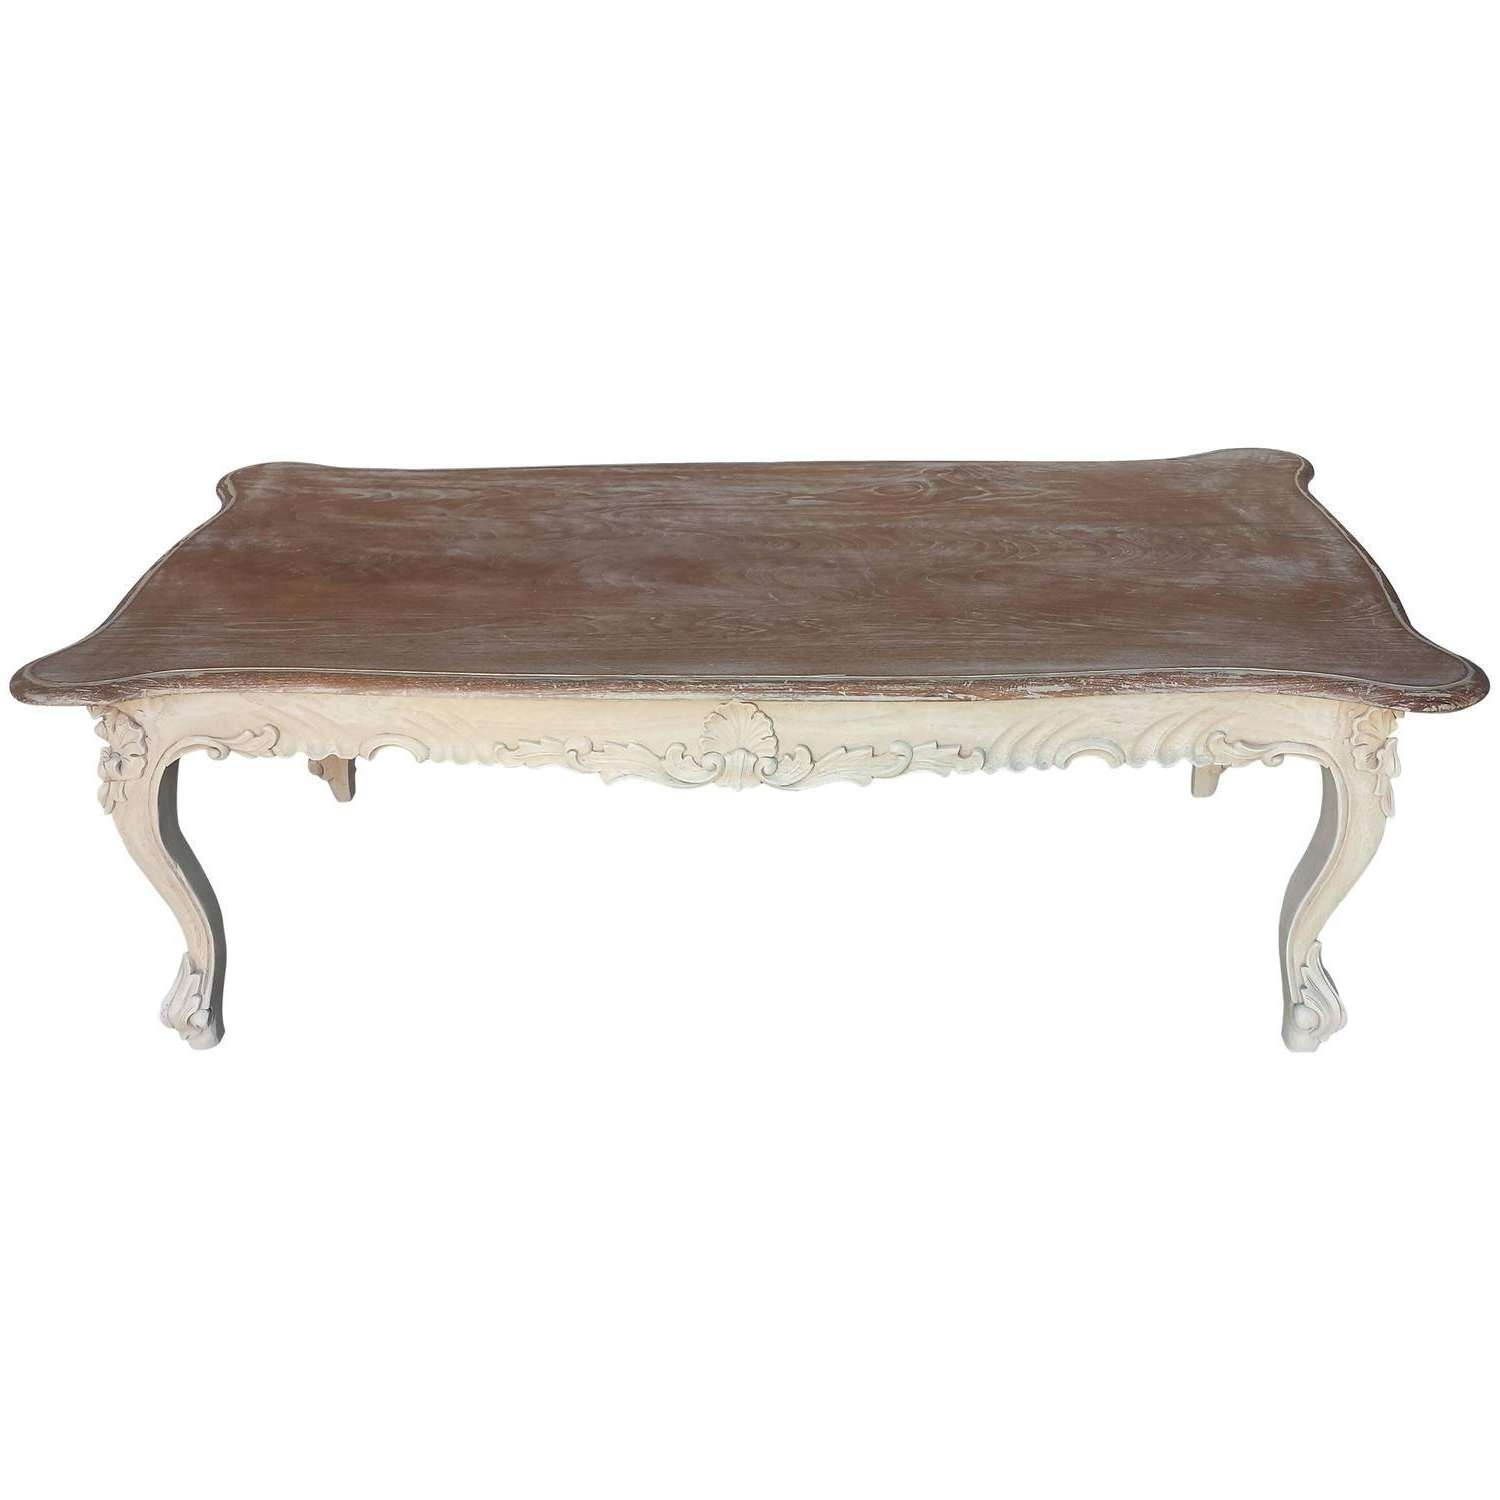 Coffee Tables : Image Of French Country Style Carved Coffee Table For 2018 Country French Coffee Tables (View 4 of 20)